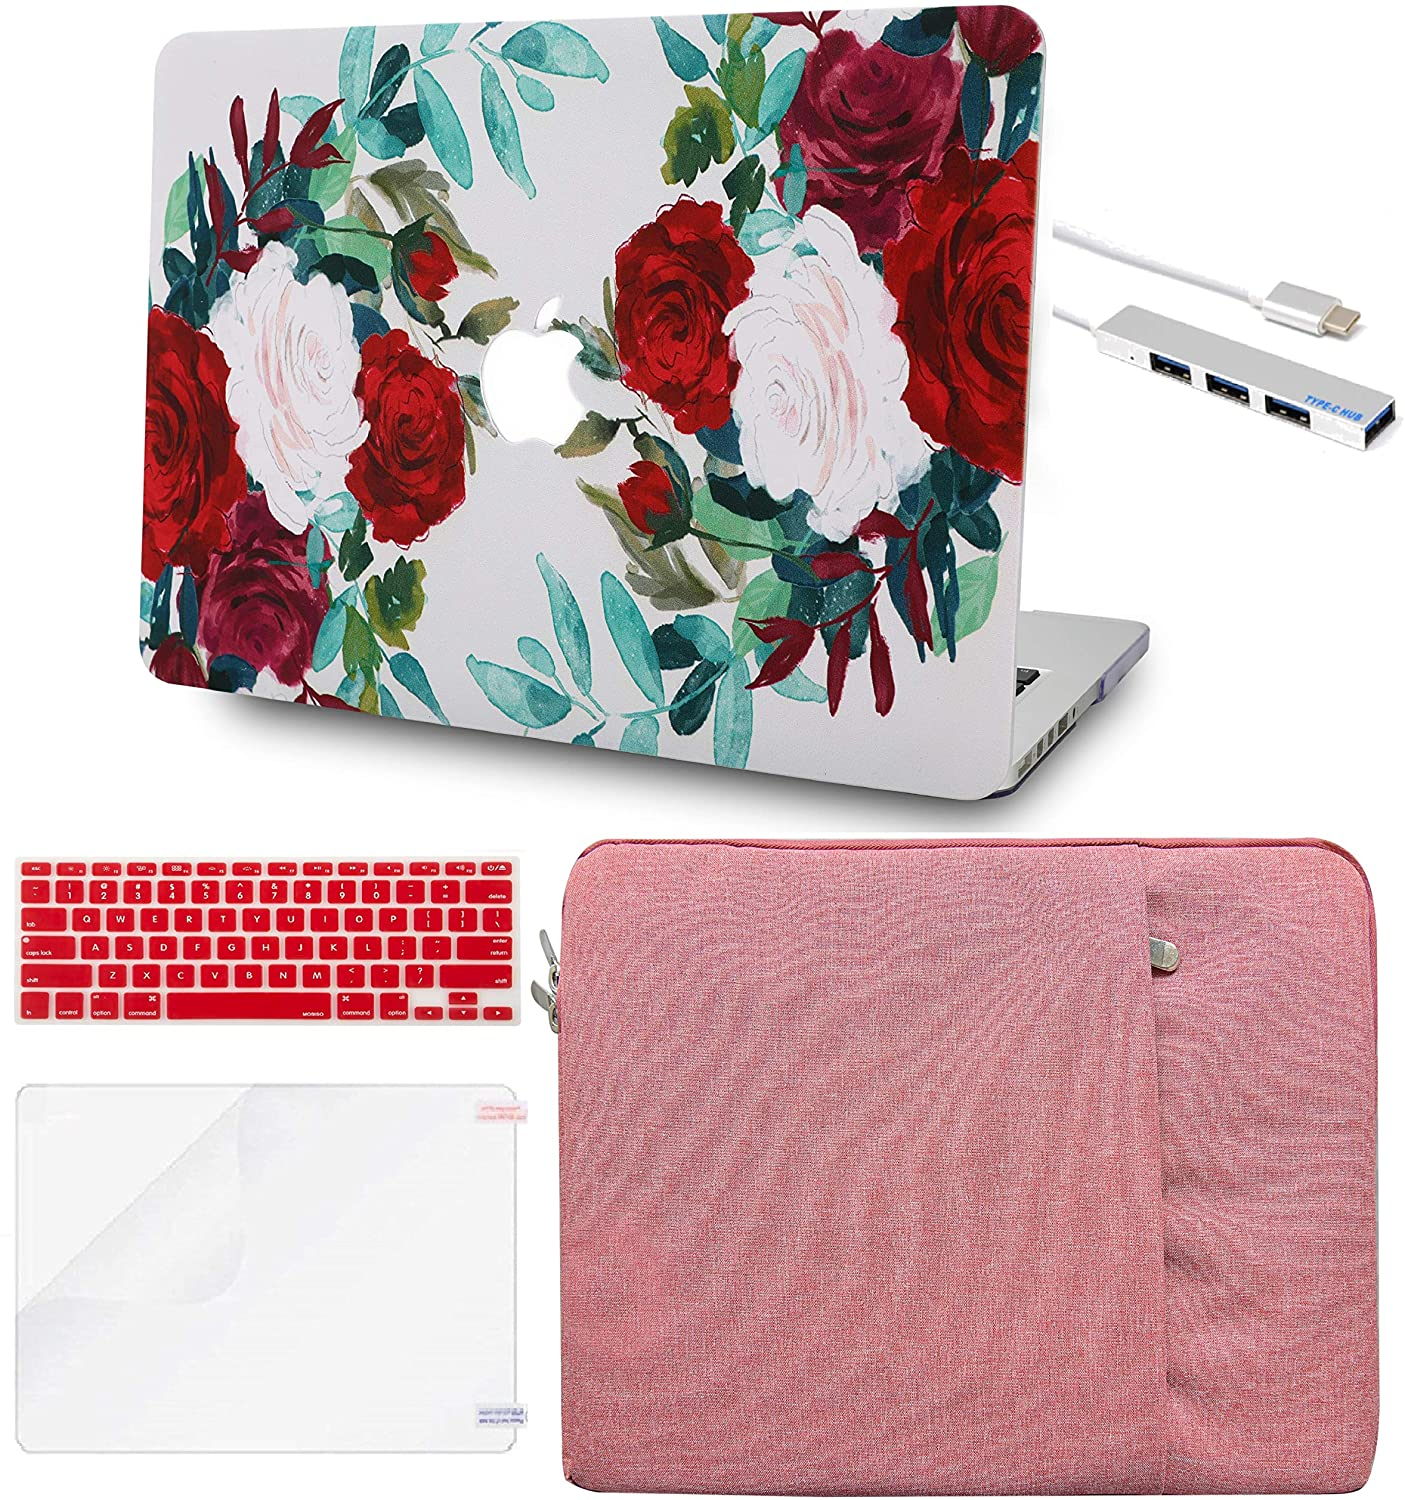 LuvCase 5in1 LaptopCase for MacBook Air 13 Inch(2020/2019/2018) A2179/A1932 Retina Display (Touch ID)HardShellCover with Sleeve, USB Hub, Keyboard Cover and Screen Protector(Flower 25)